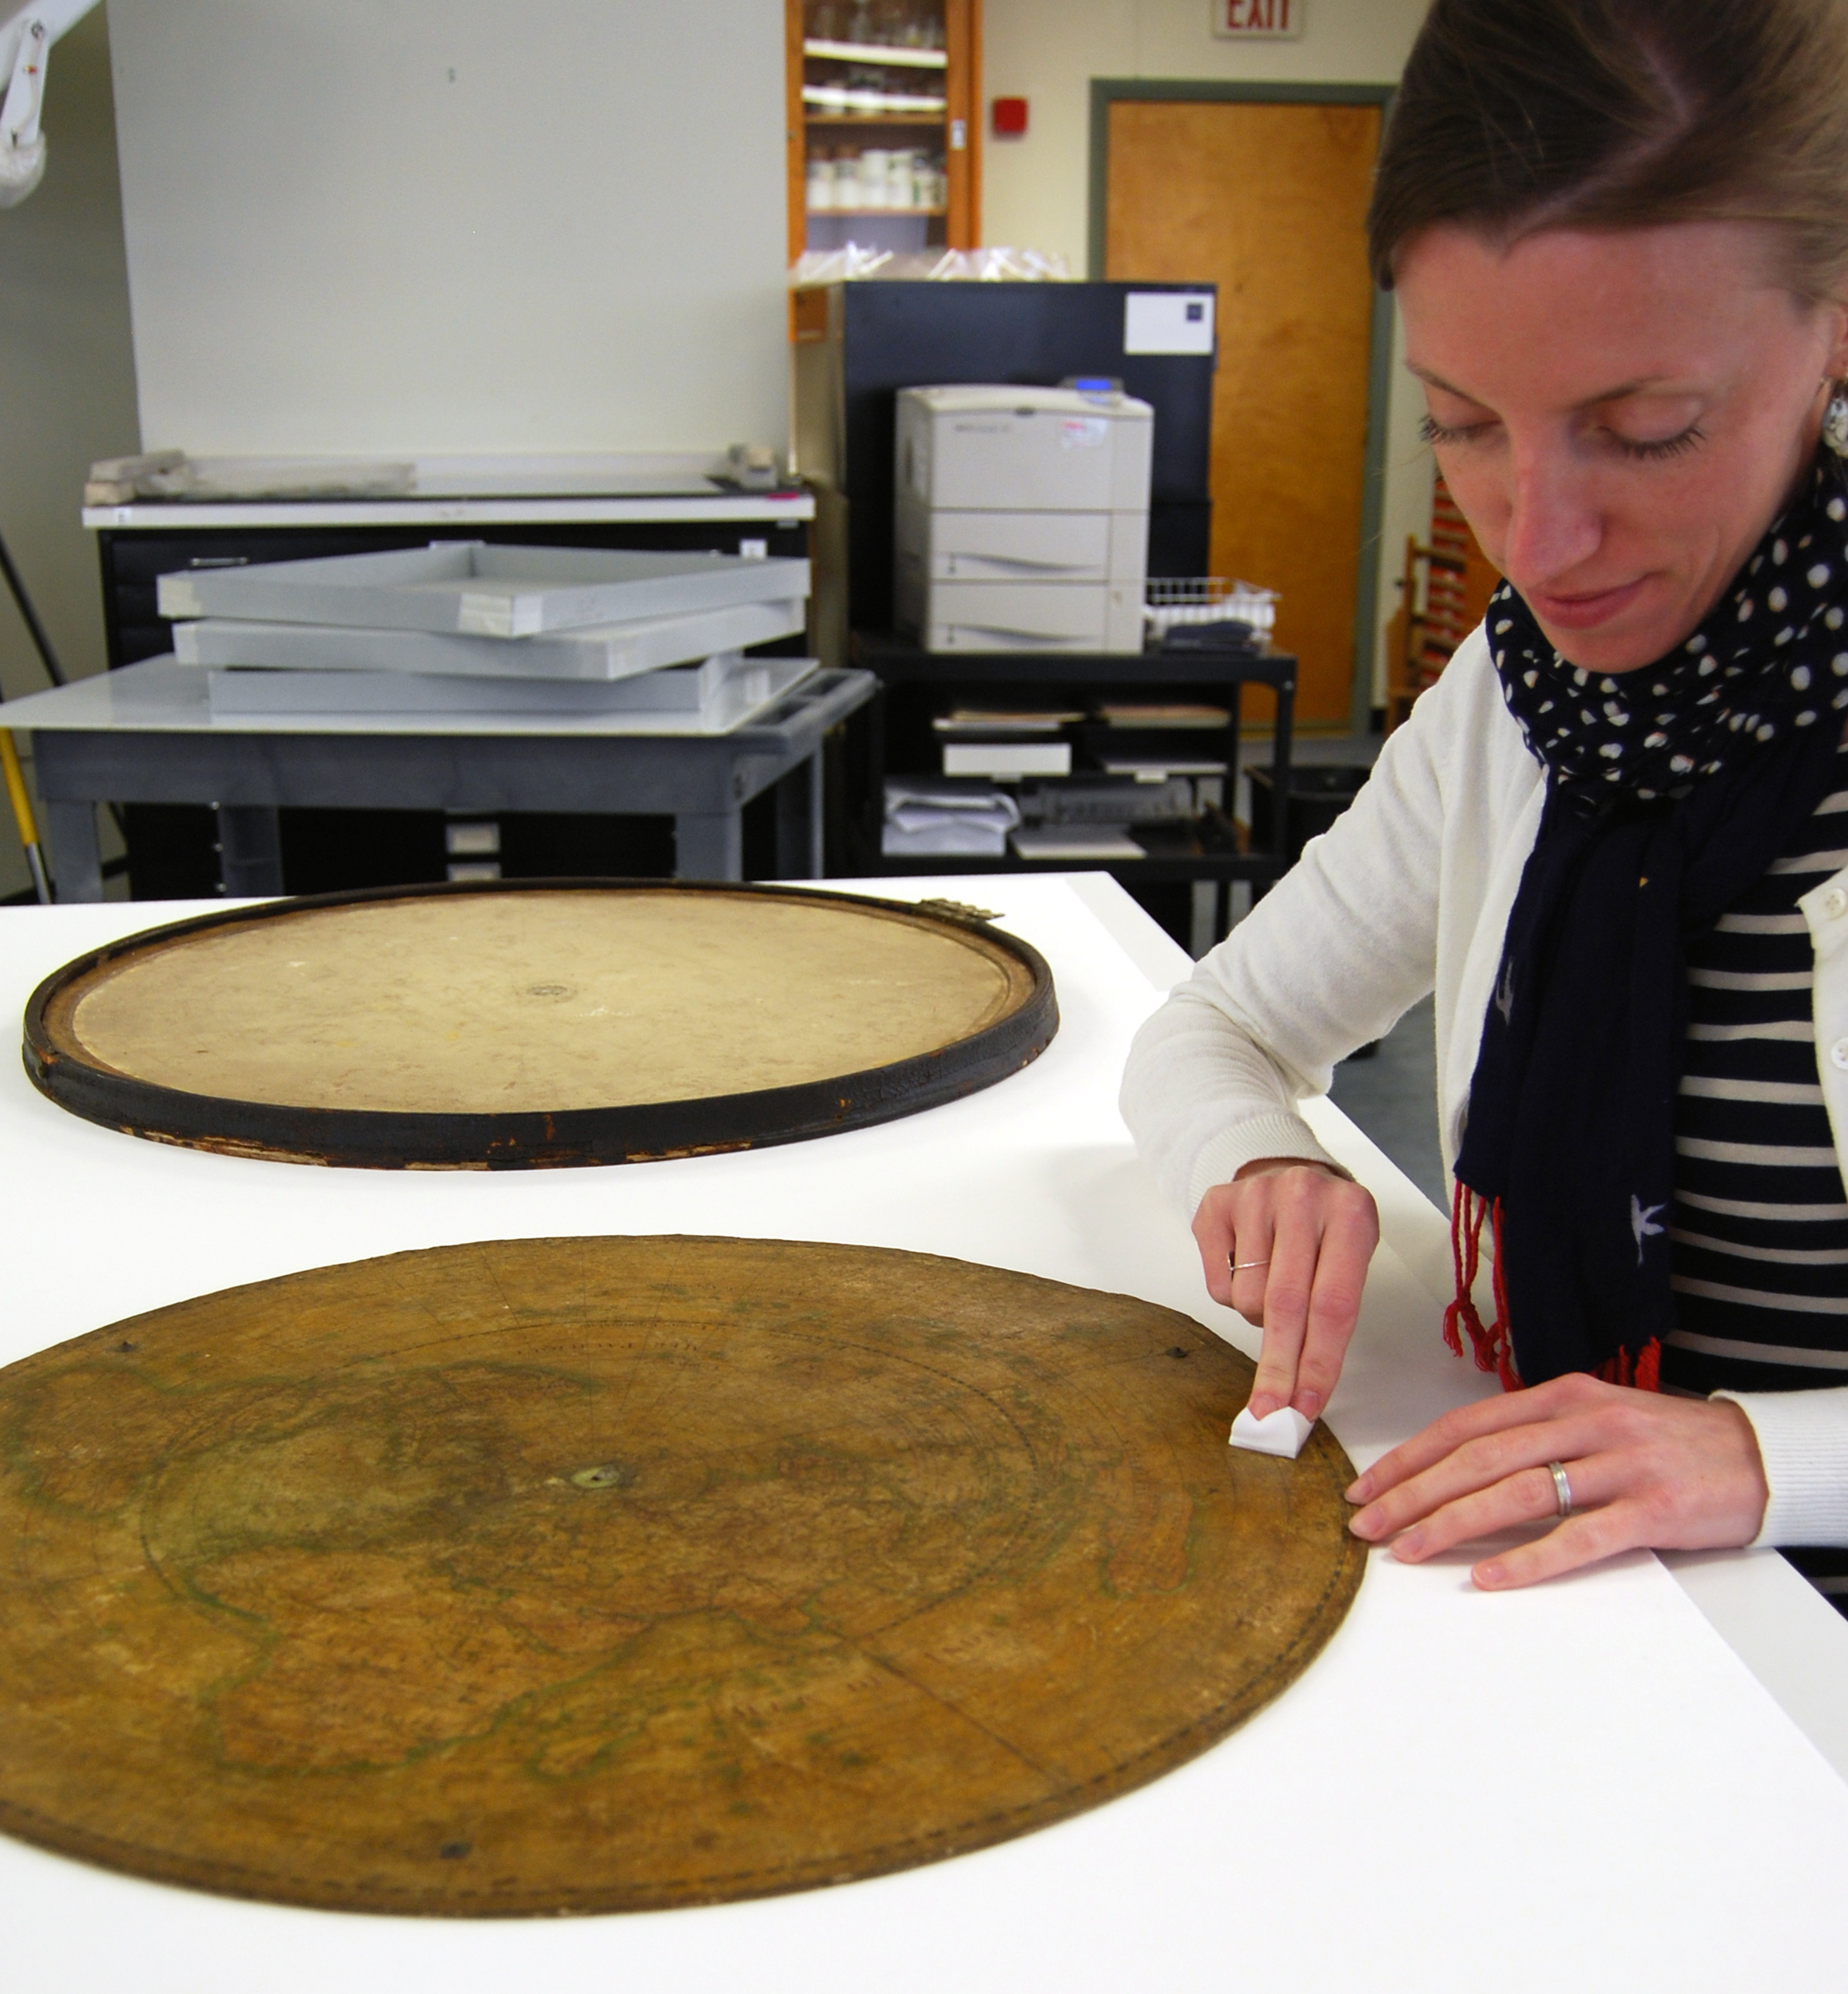 Conservator cleaning the map with a soft sponge